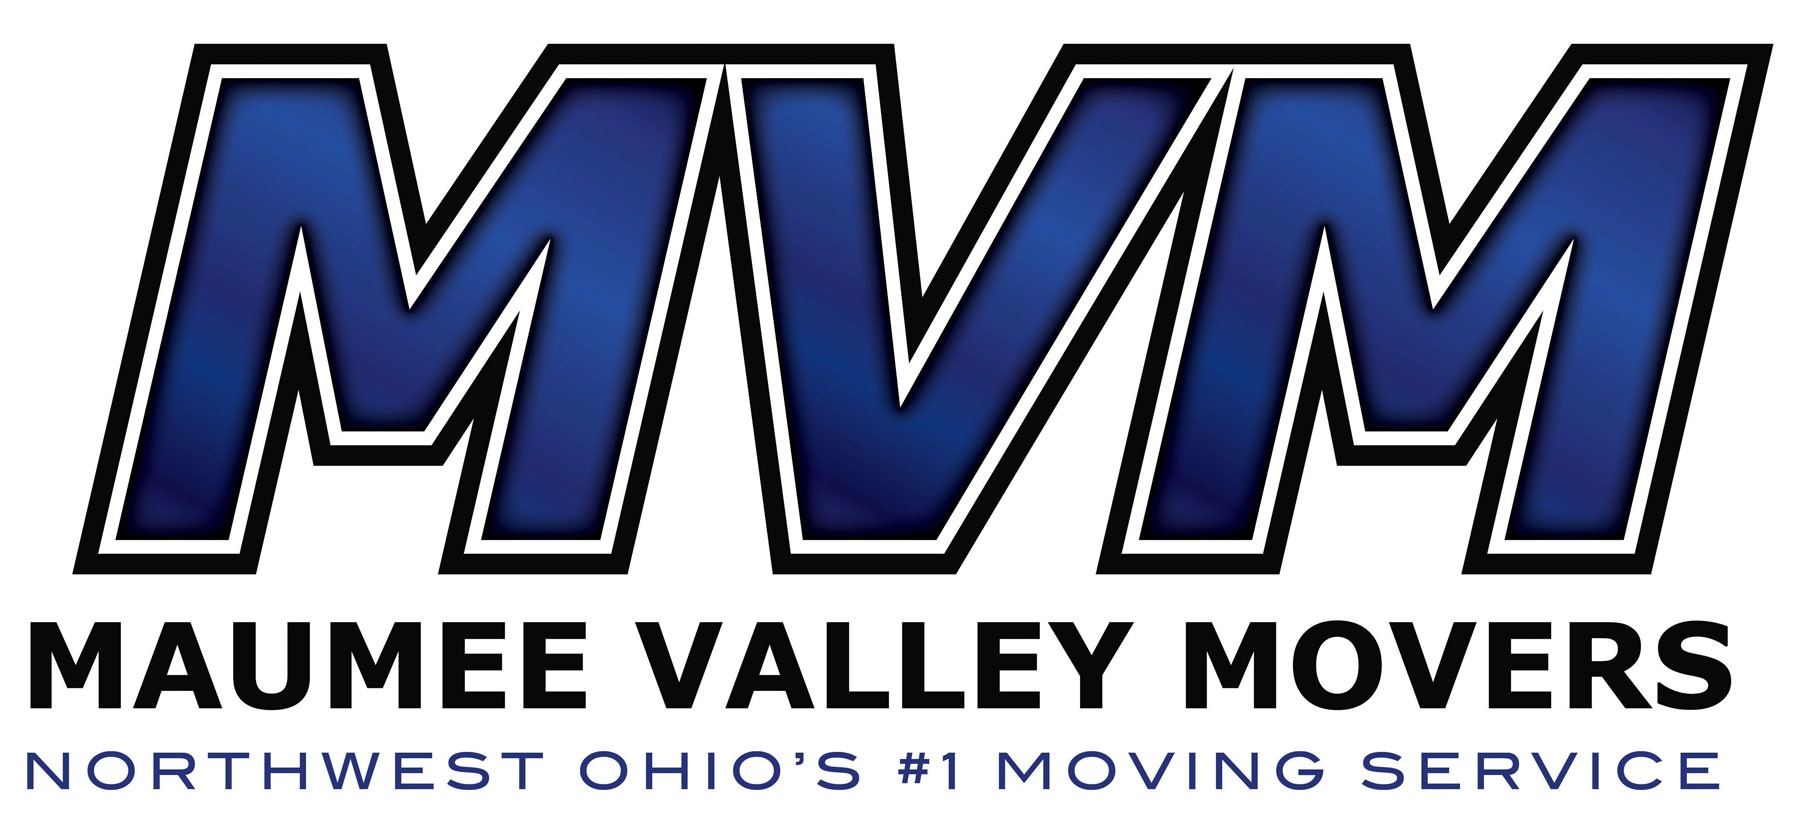 maumee valley movers - toledo, oh movers